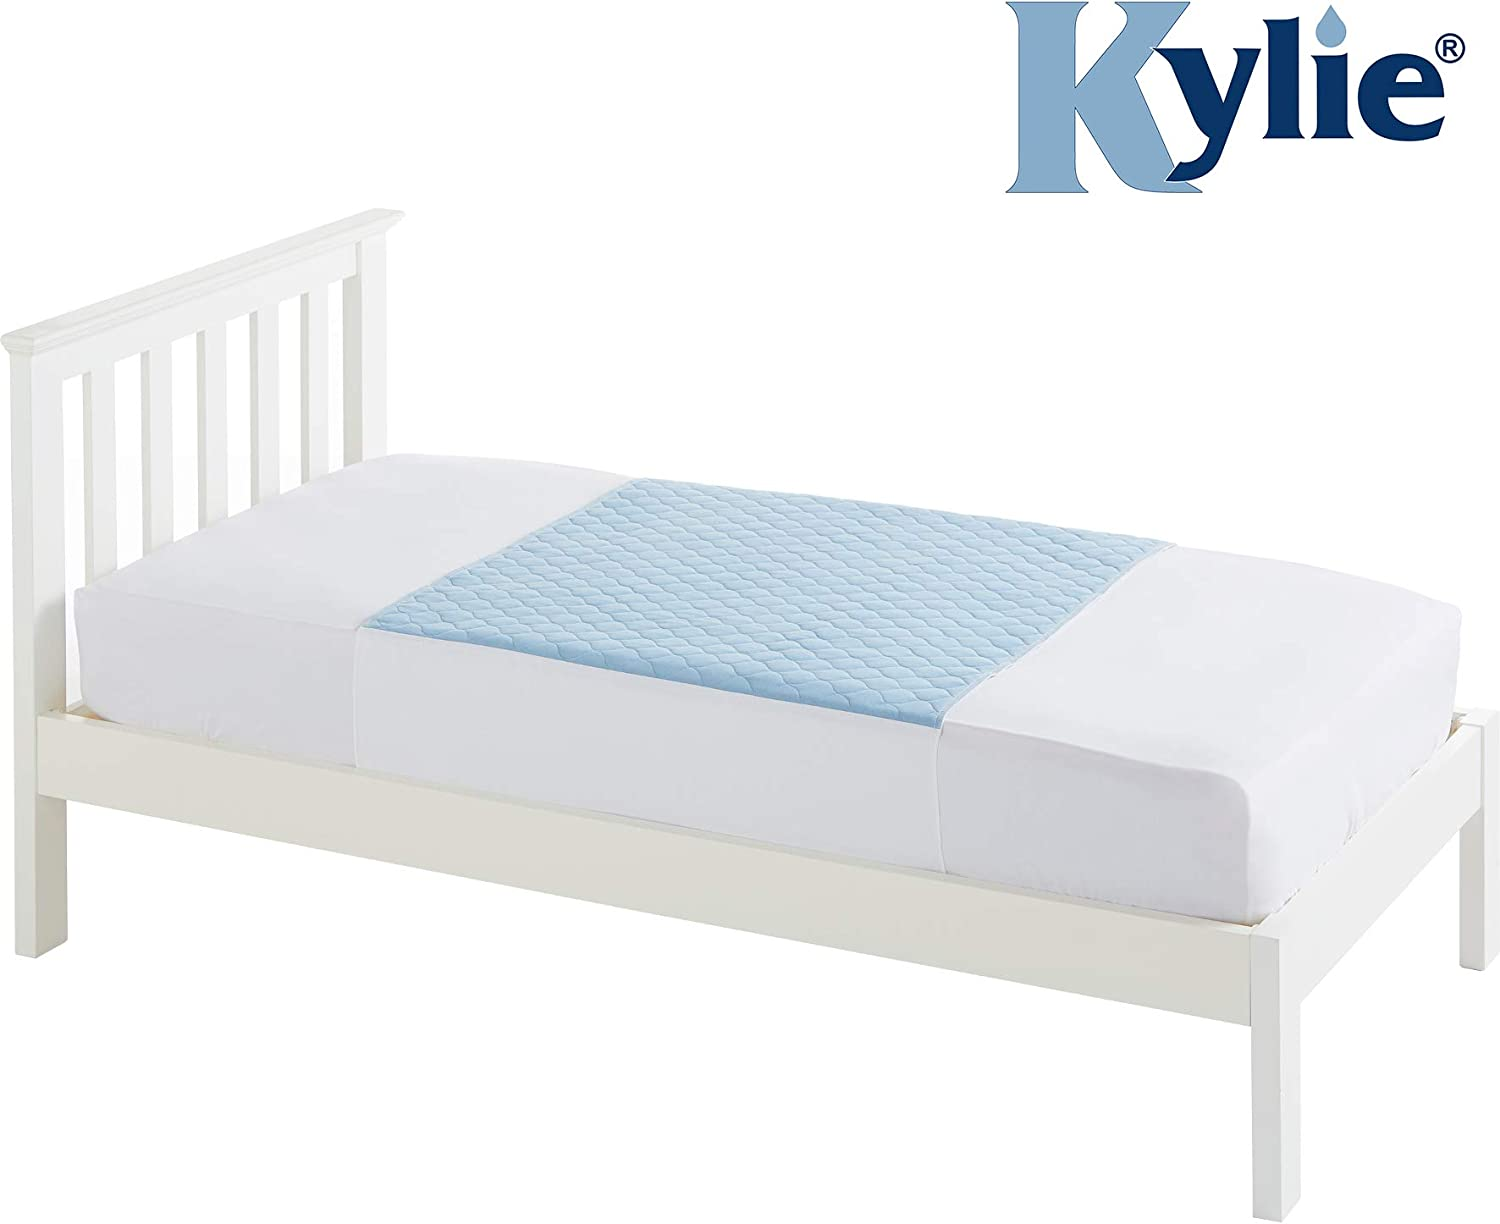 Kylie Premium Bed Pads for Single Bed, Blue, 3 Litre (Eligible for VAT Relief in The UK)